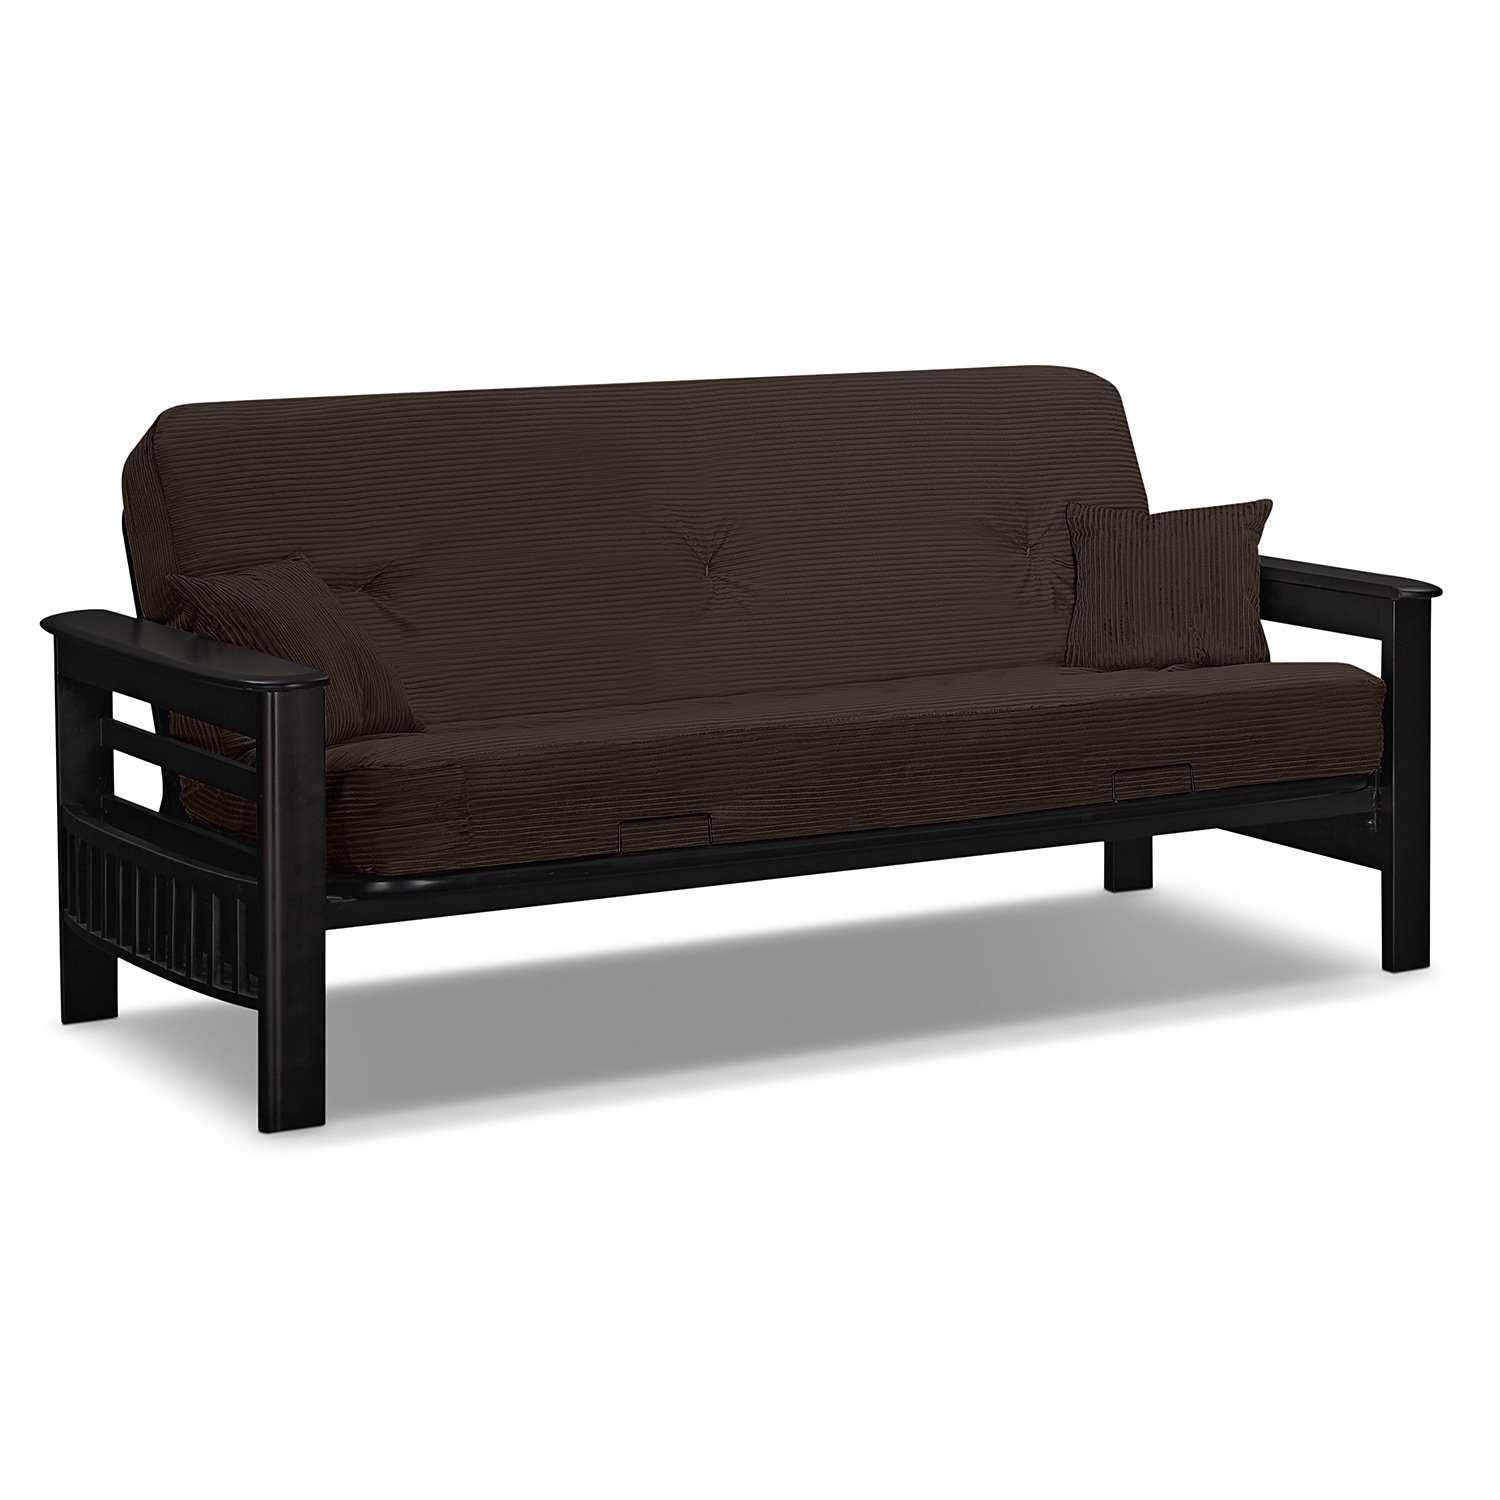 Tampa futon sofa bed brown value city furniture for Furniture sofa bed